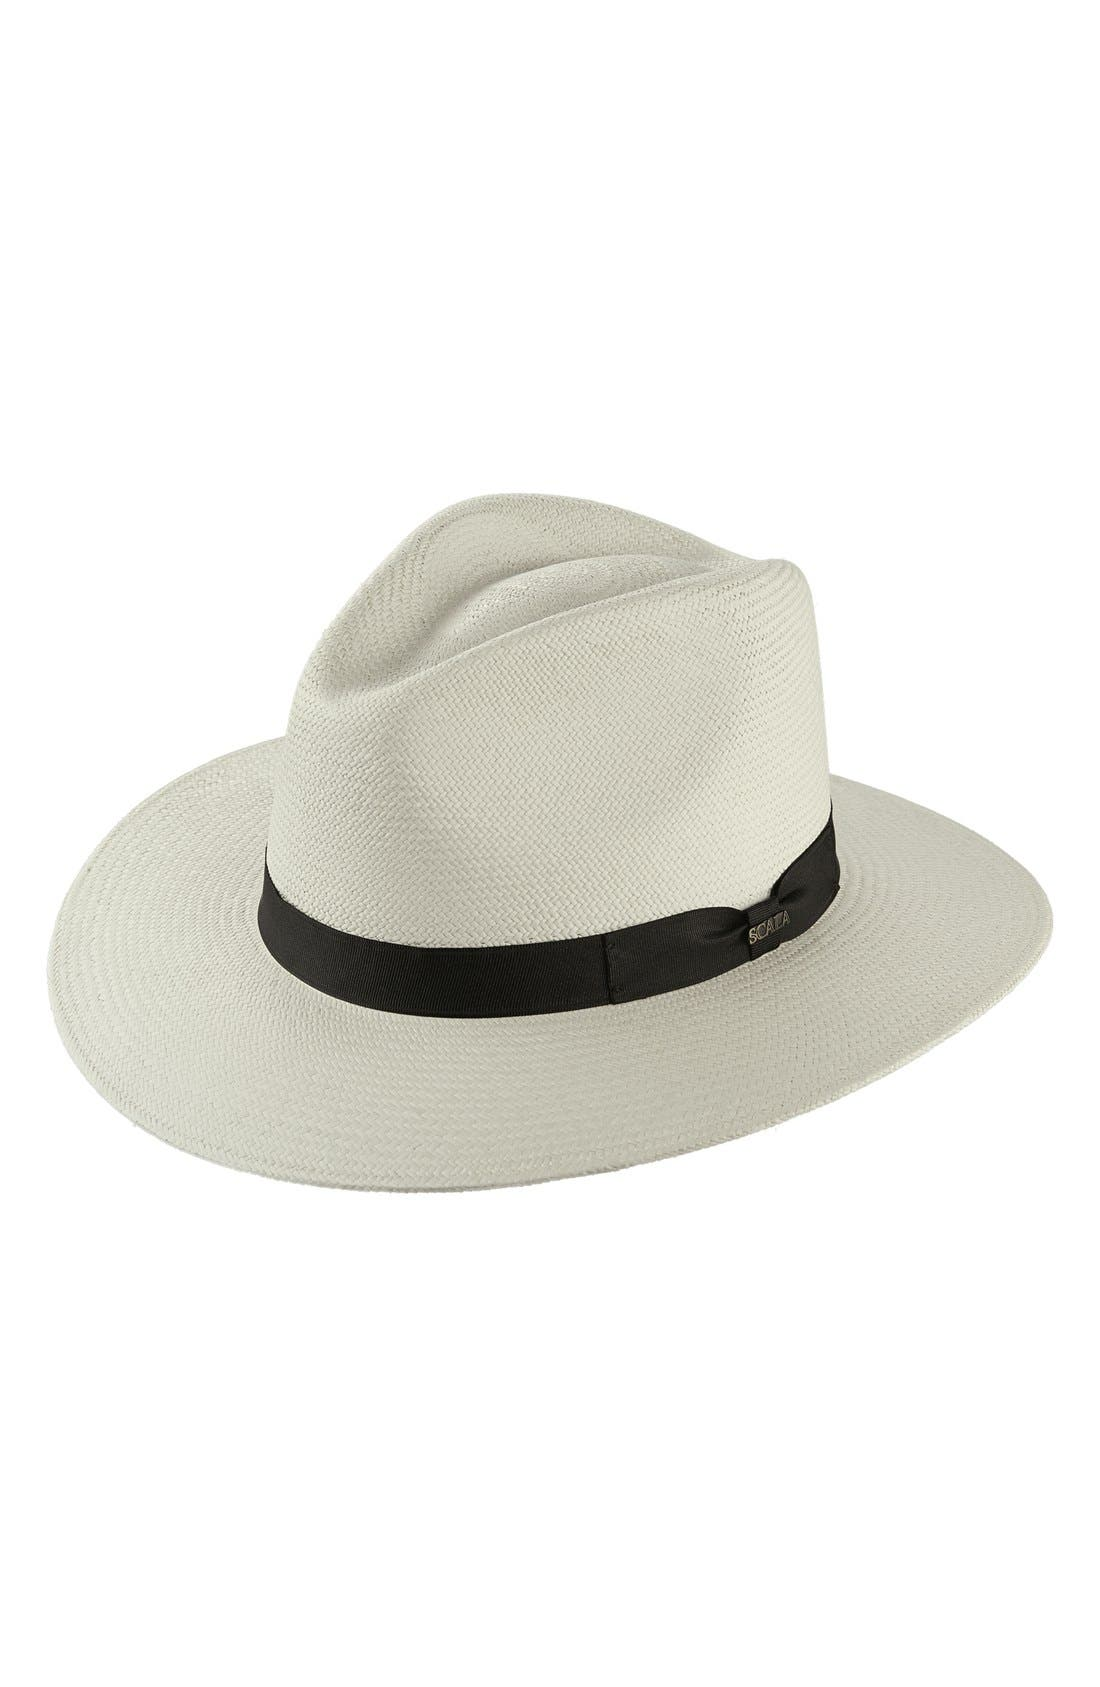 Straw Safari Hat,                         Main,                         color, 116